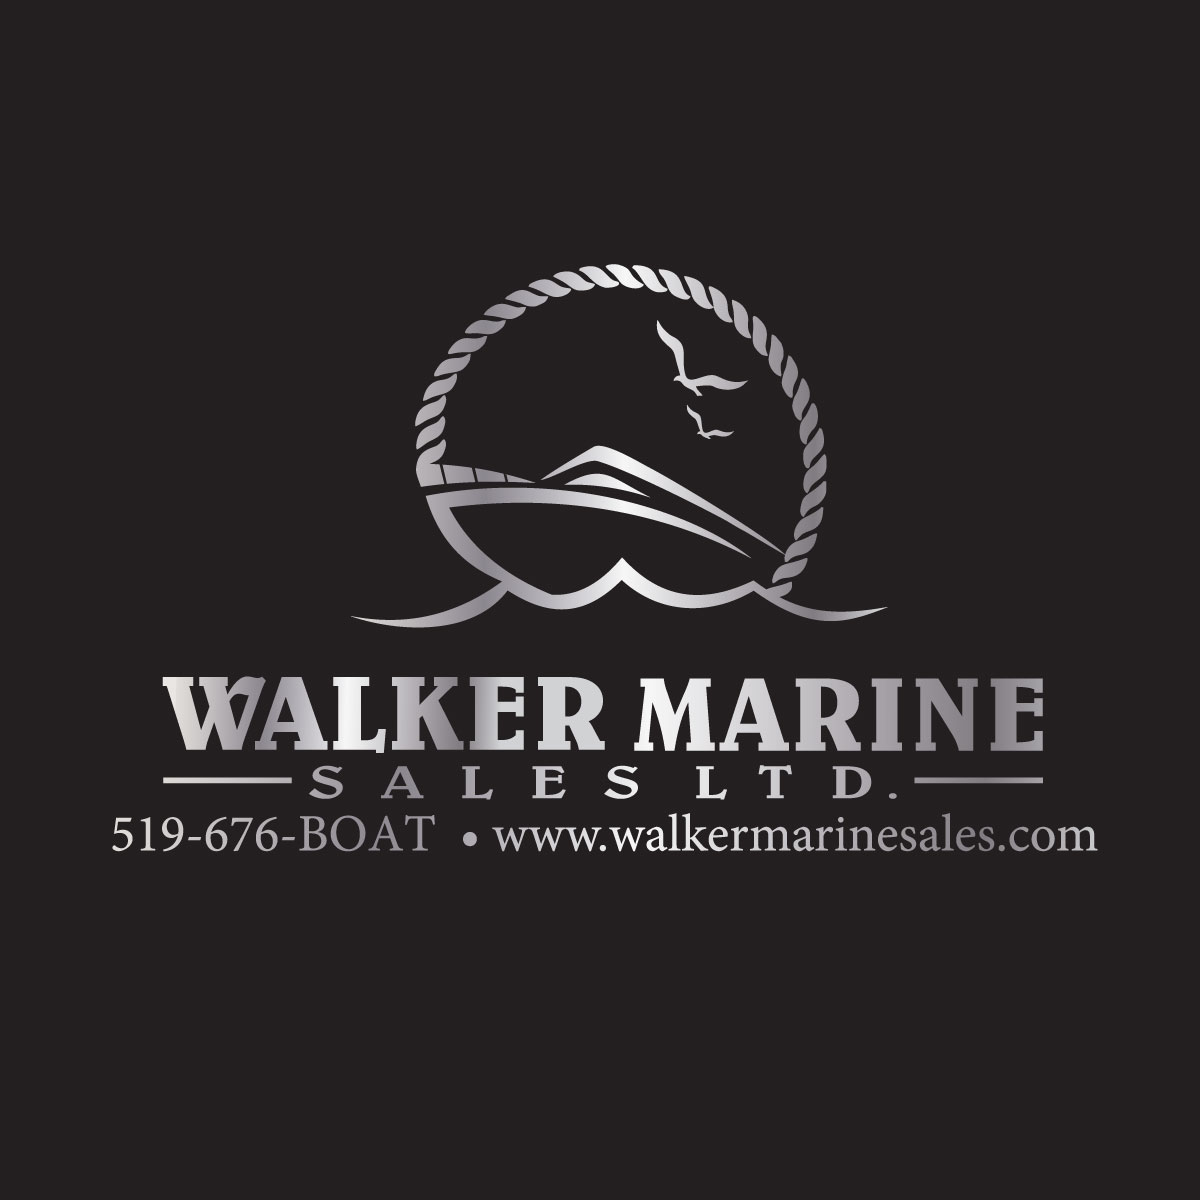 Walker Marine Sales Ltd.